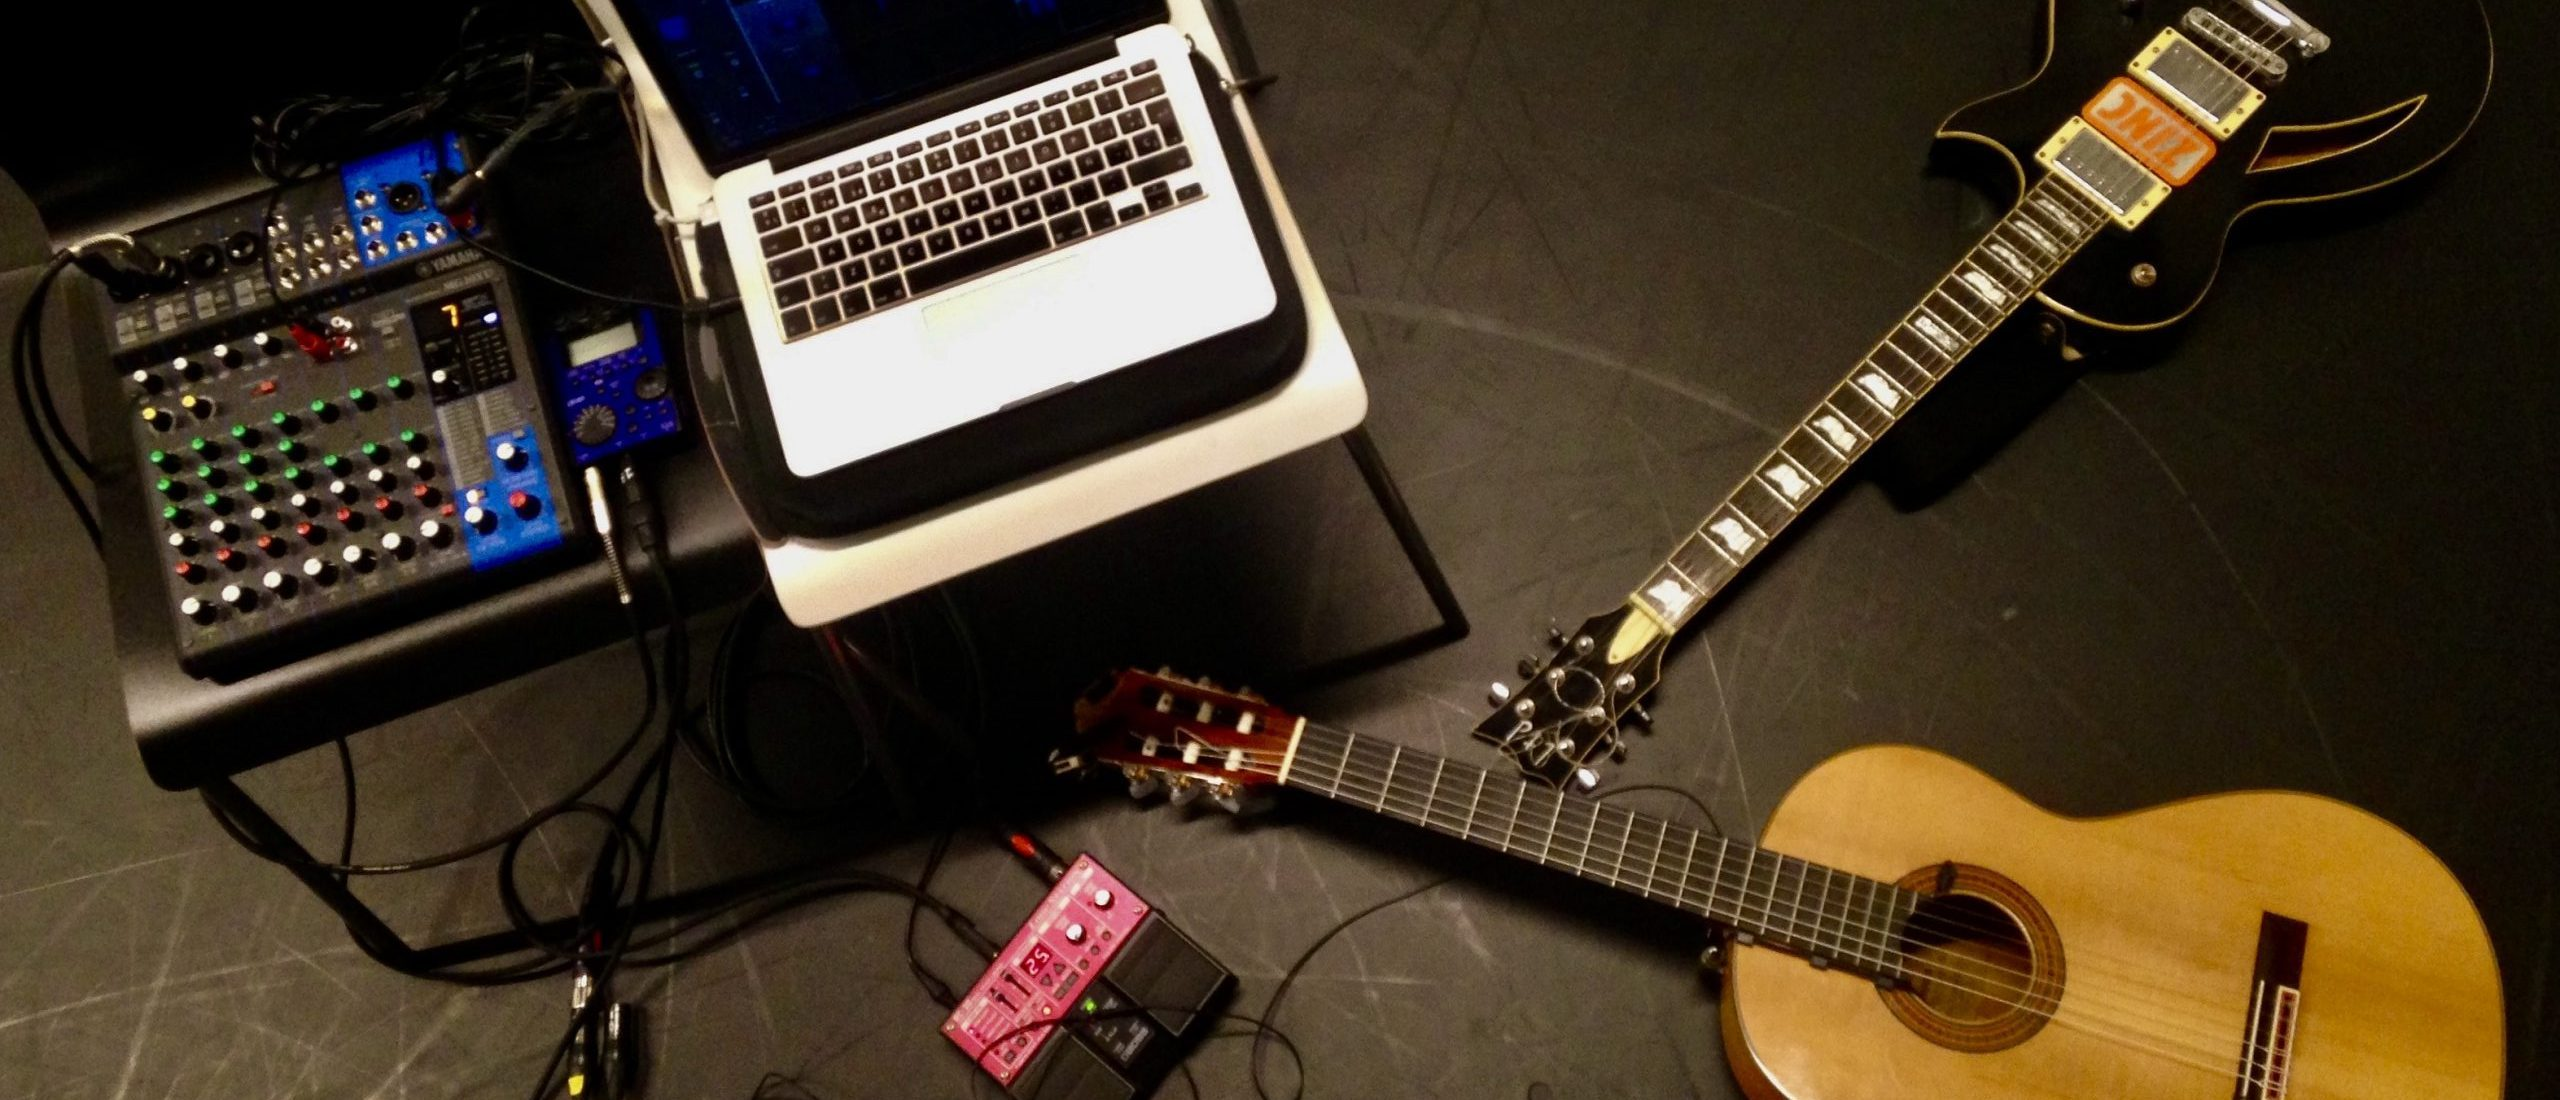 guitars & technology